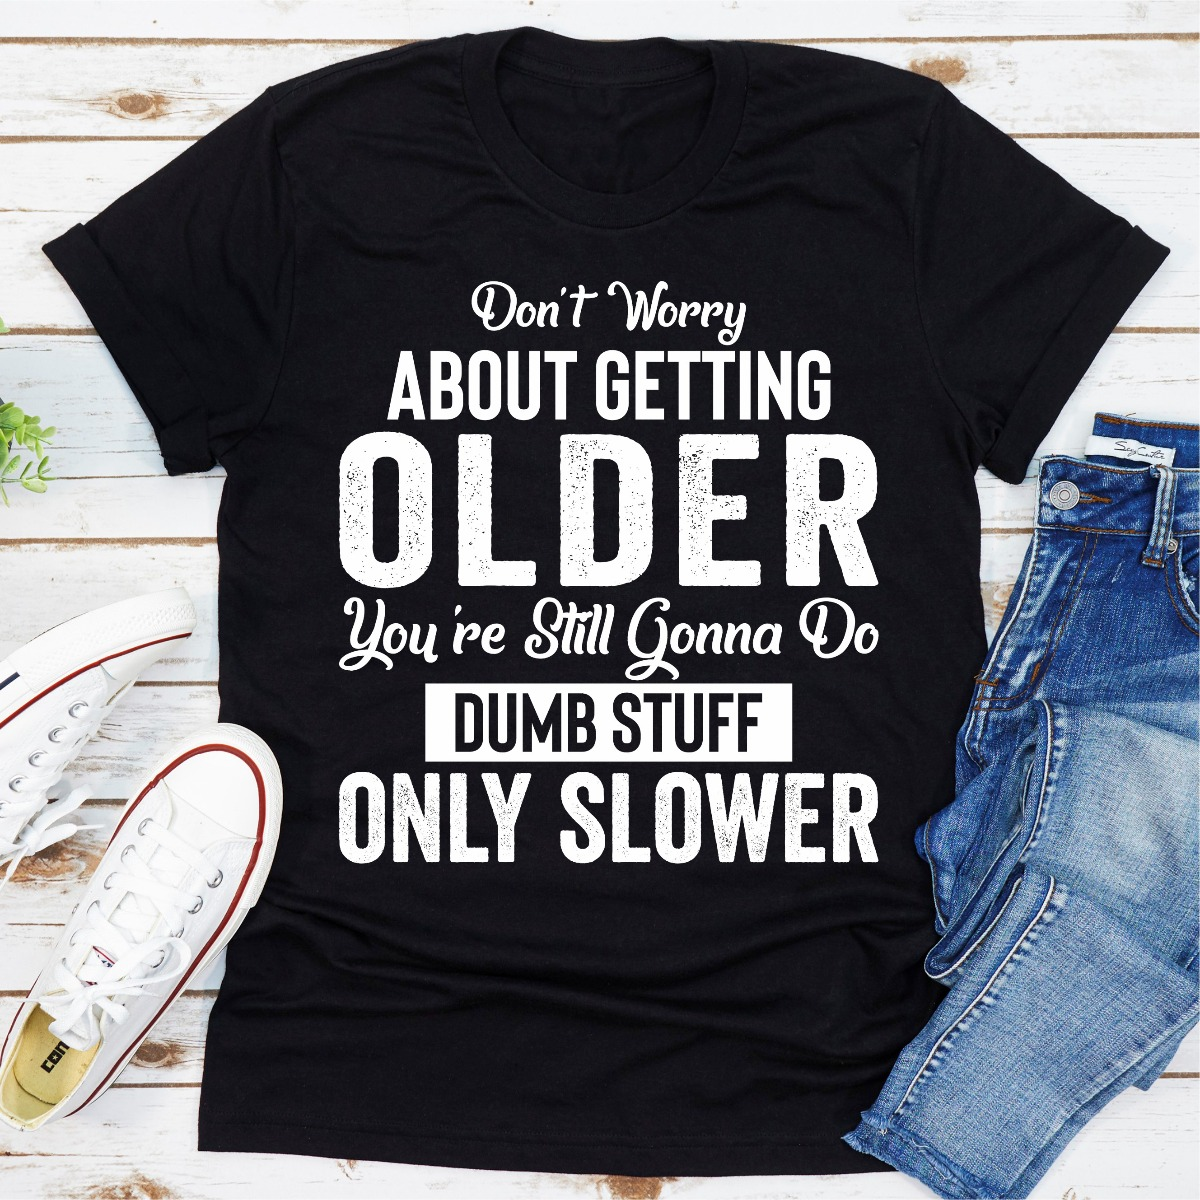 Don't Worry About Getting Older (Black / S)